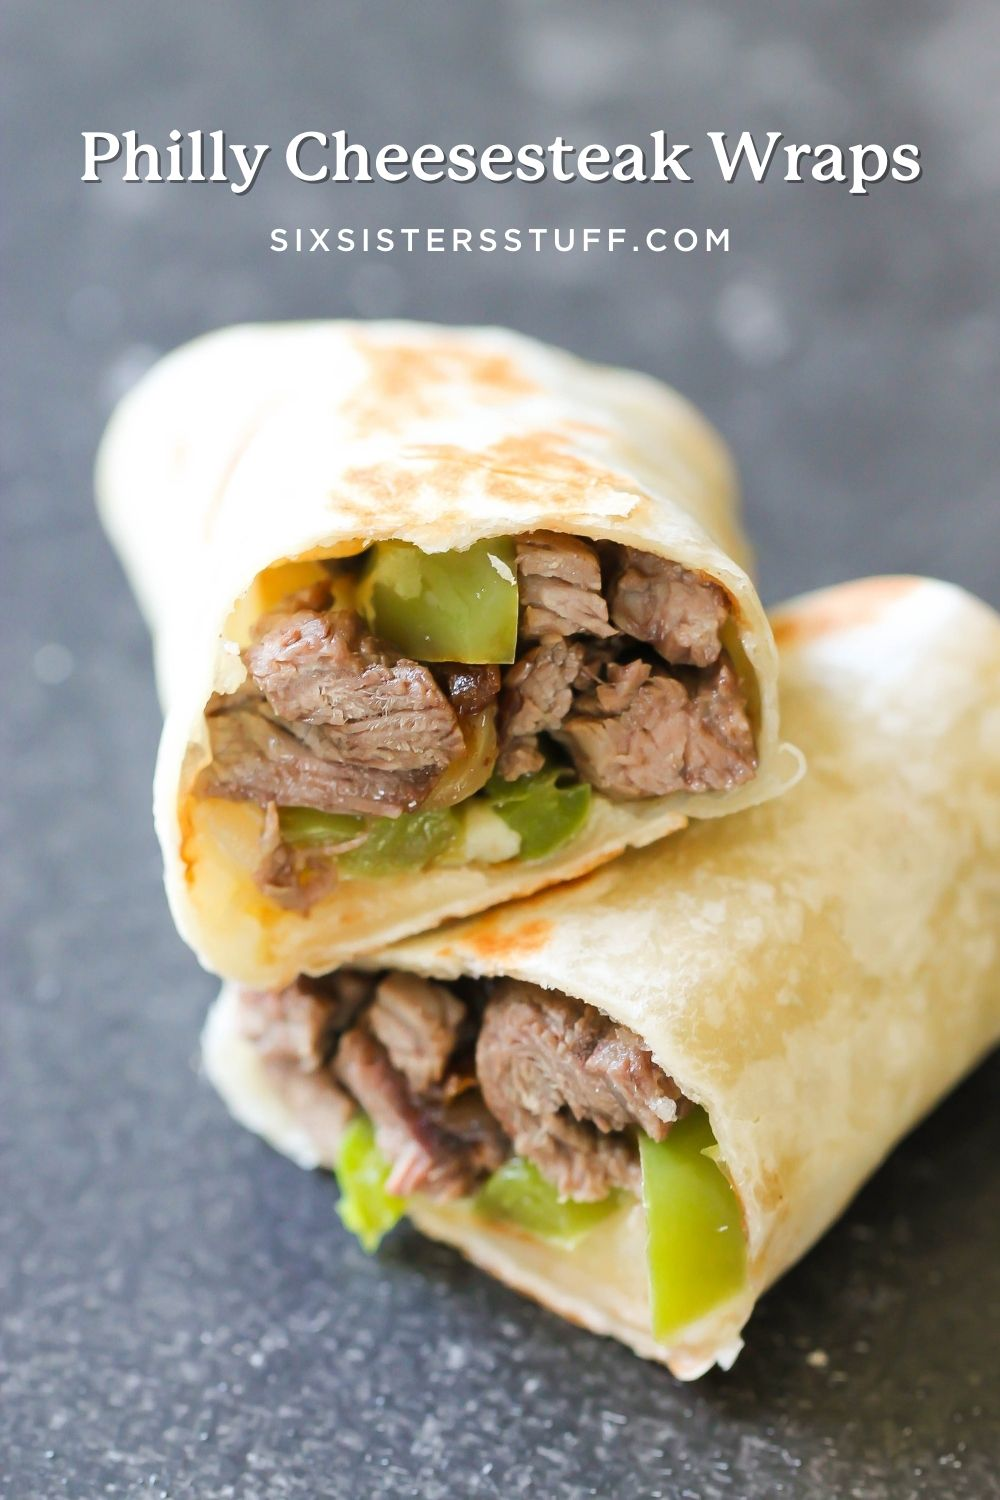 philly cheesesteak wraps with cheese and green pepper and onions